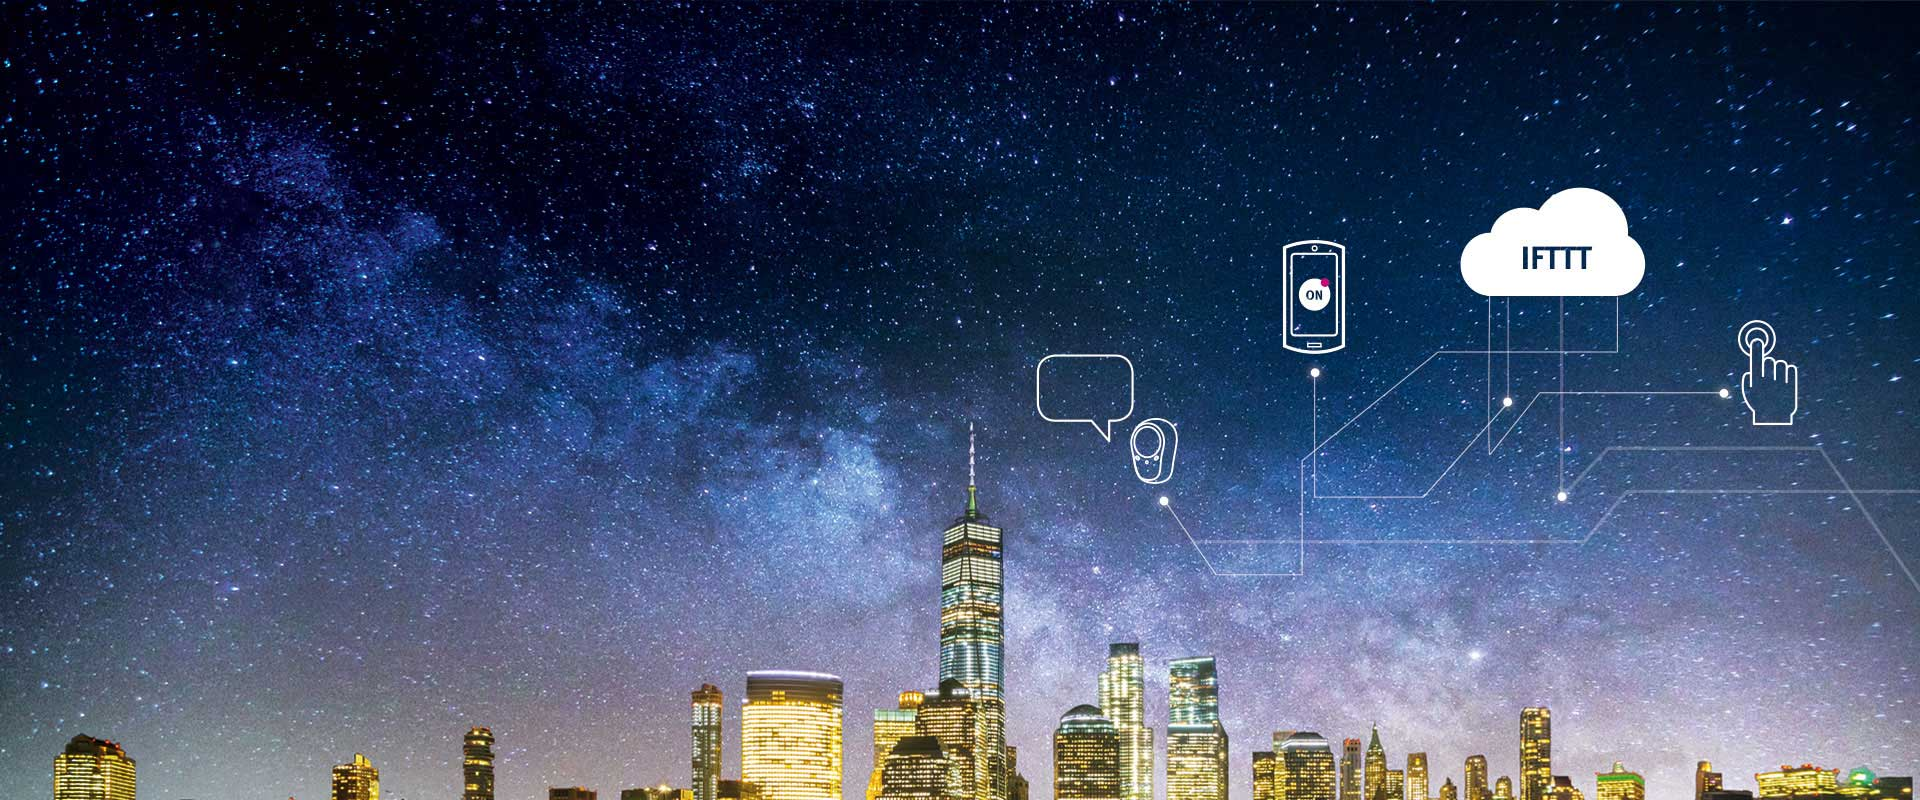 Introducing wireless connectivity